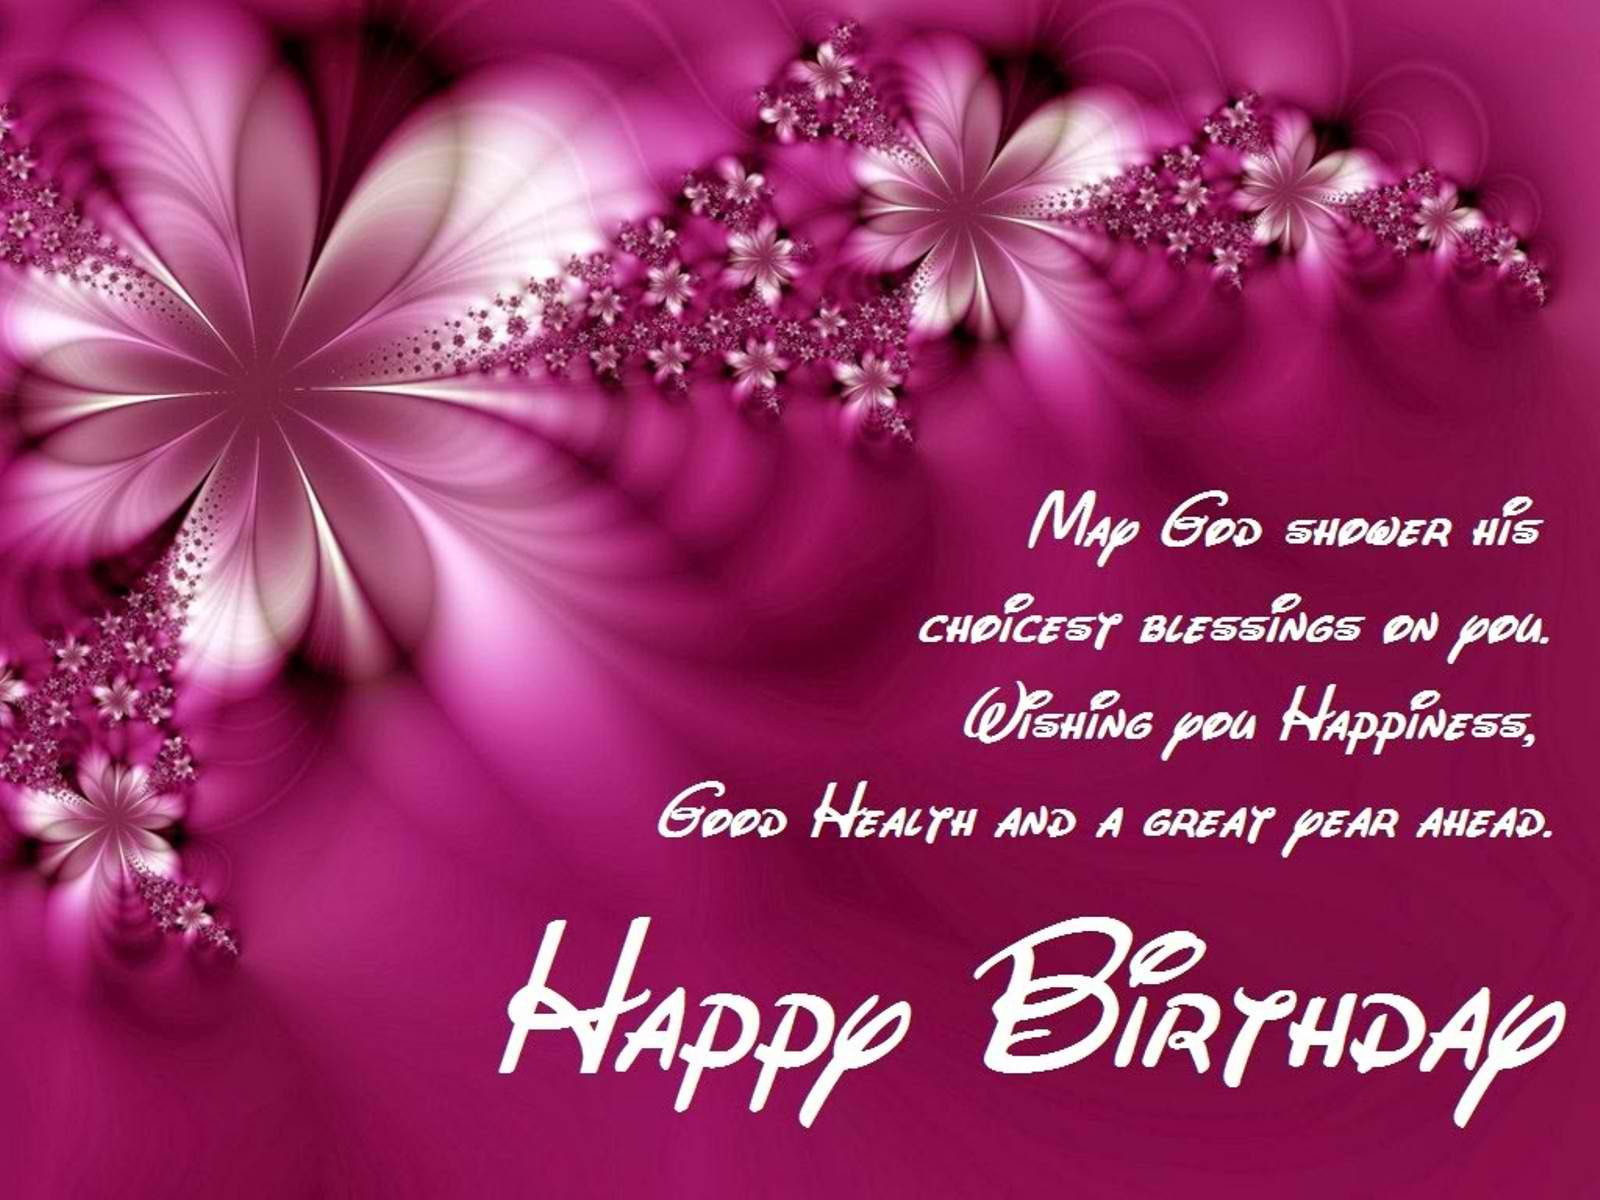 birthday wishes wallpaper download ; 2bb561a201d361075d832aa73e814529